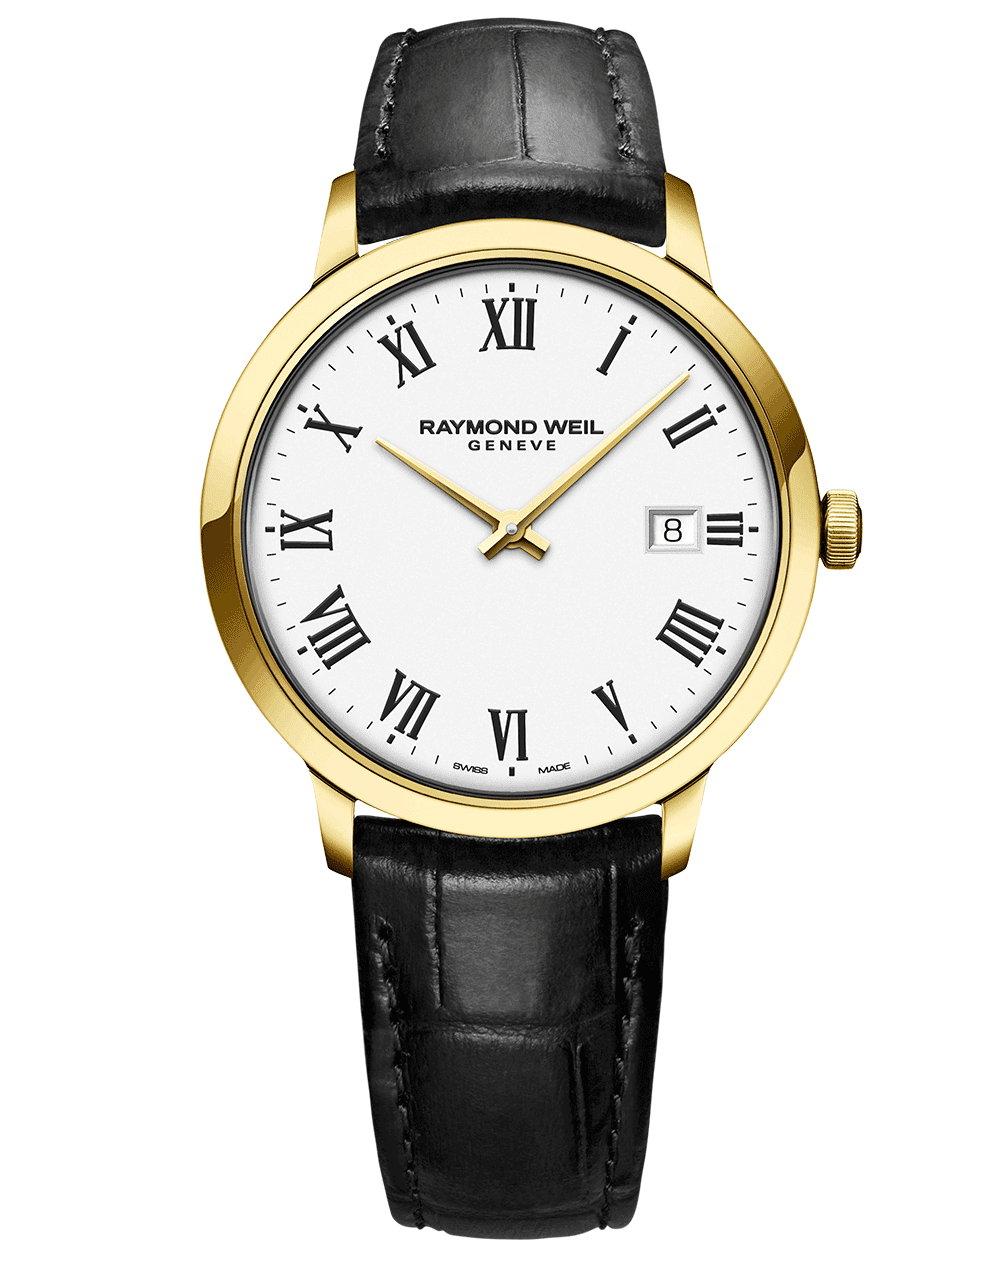 Toccata Men's Gold-Plated White Dial Quartz Watch 39 mm 5485-PC-00300